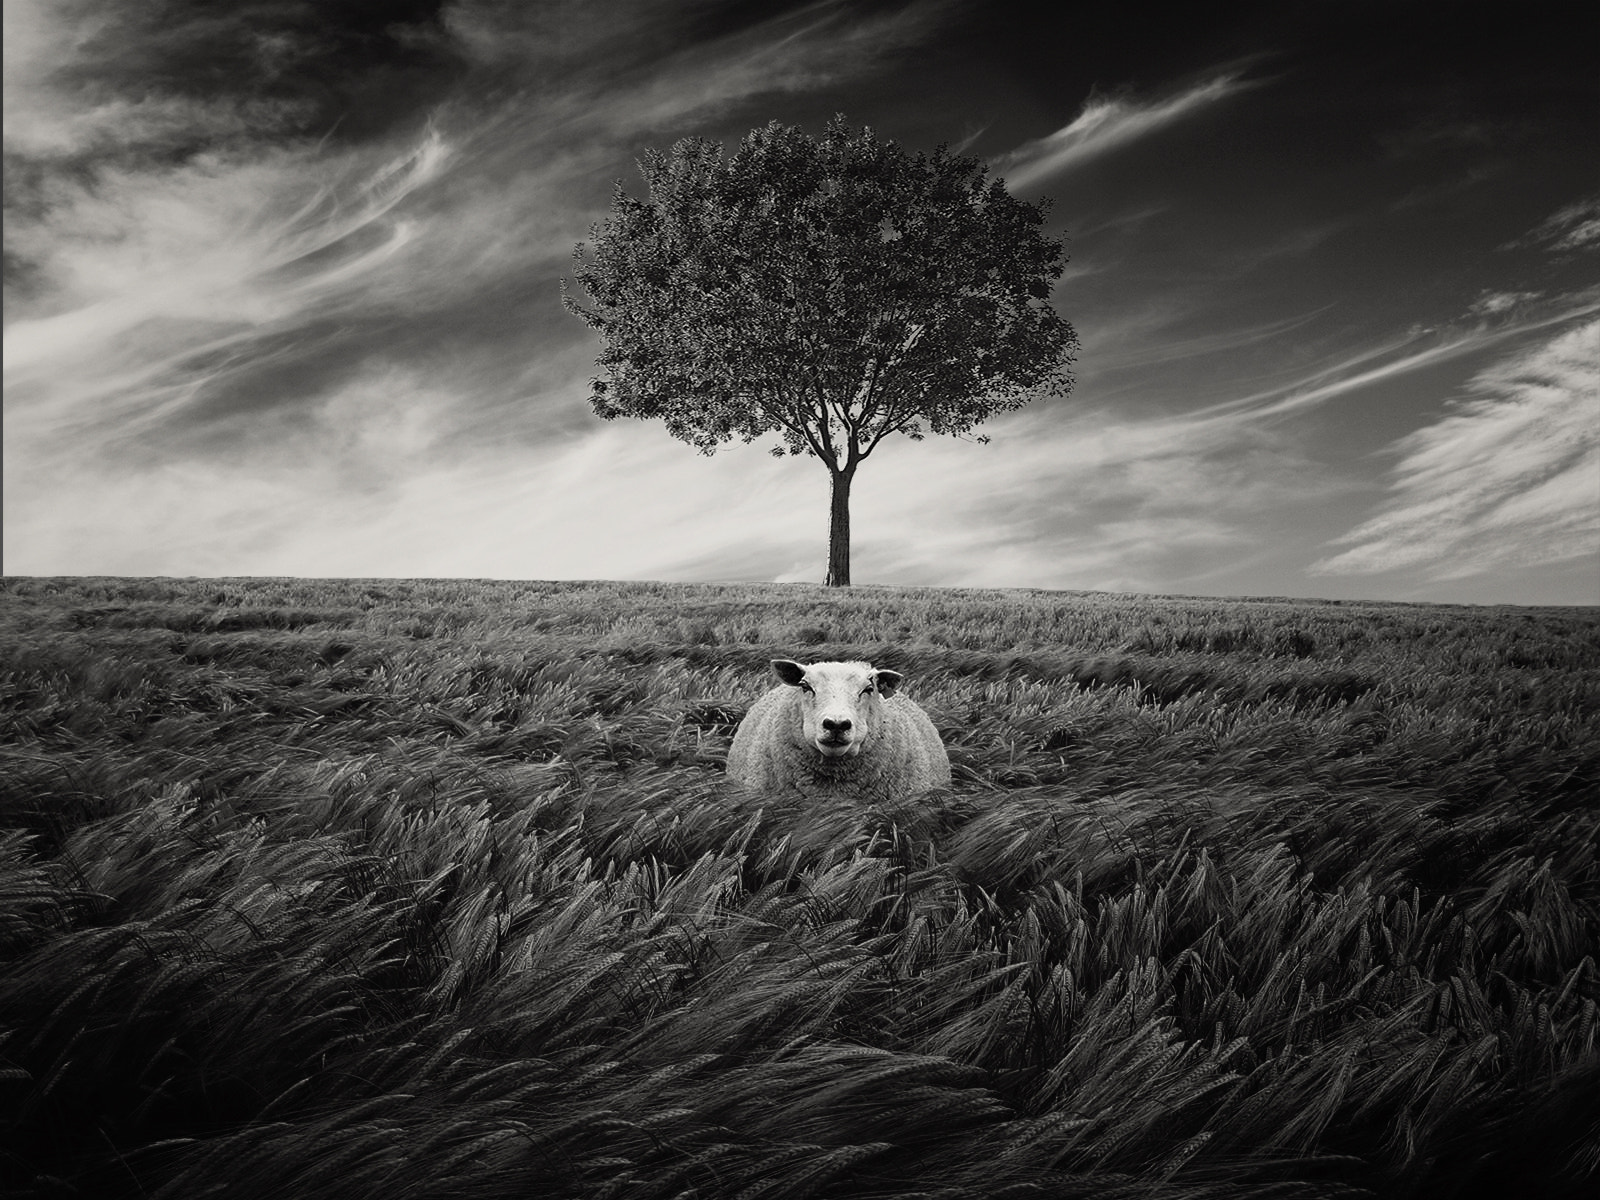 Photograph Alone by JC Vogt on 500px